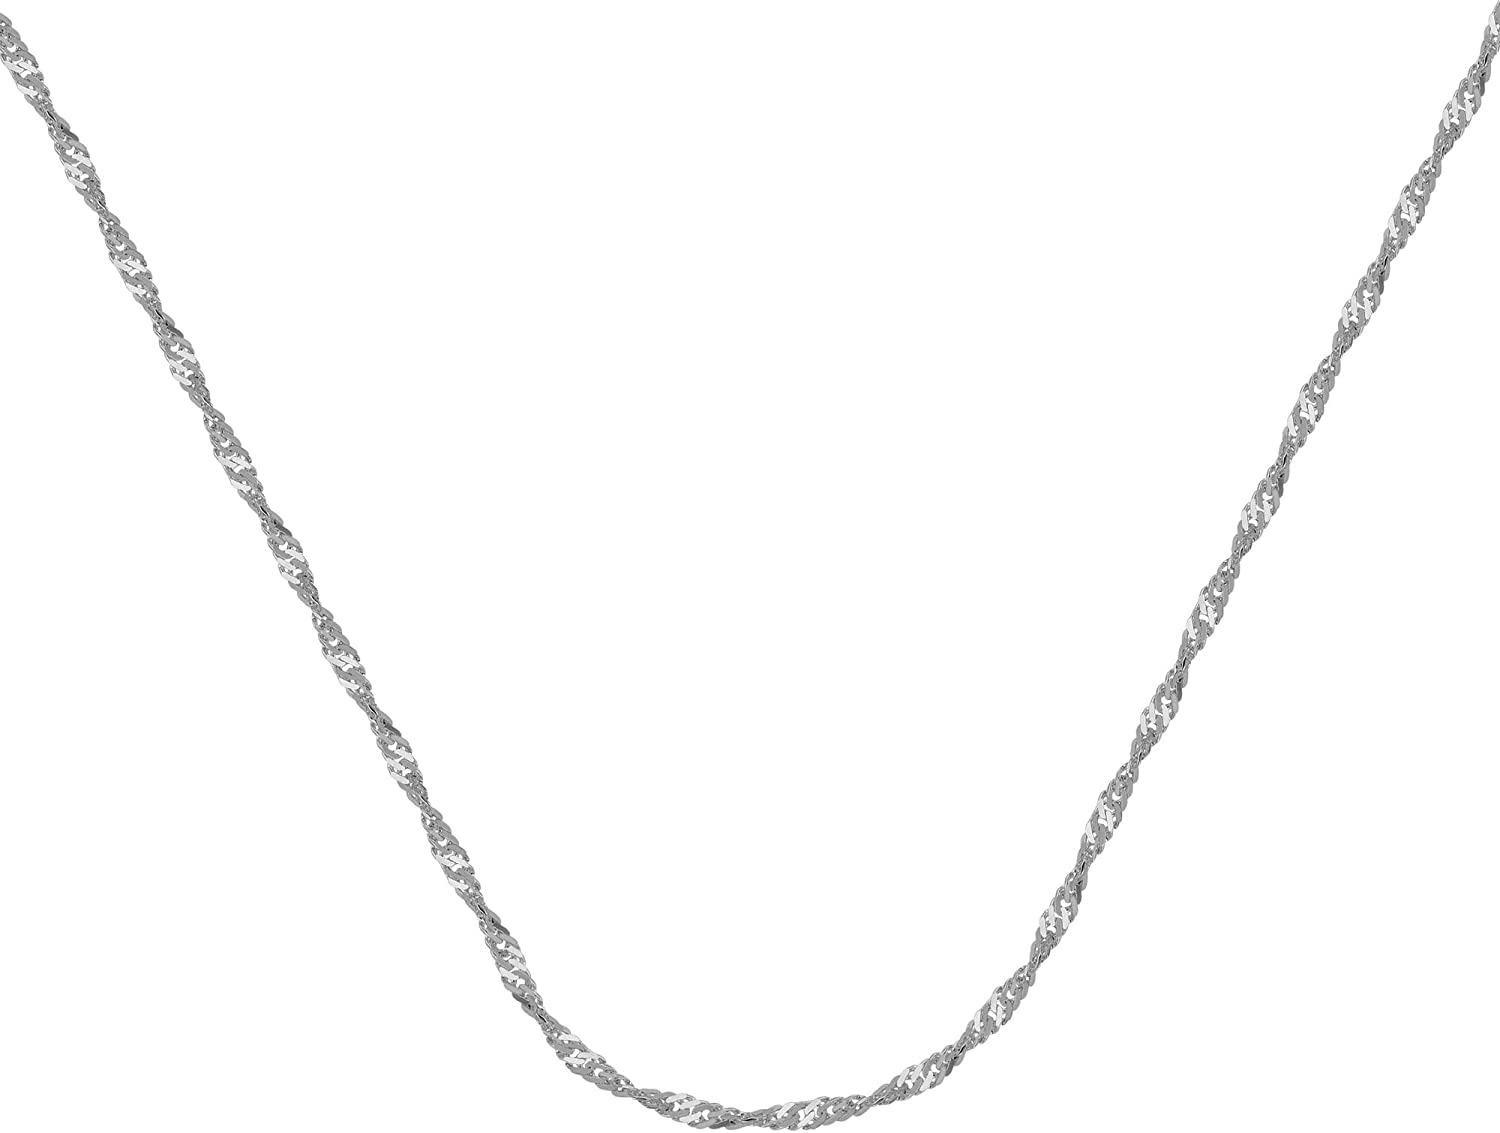 20 INCHES LONG SINGAPORE CHAIN 14KT GOLD SINGAPORE CHAIN WITH LOBSTER LOCK